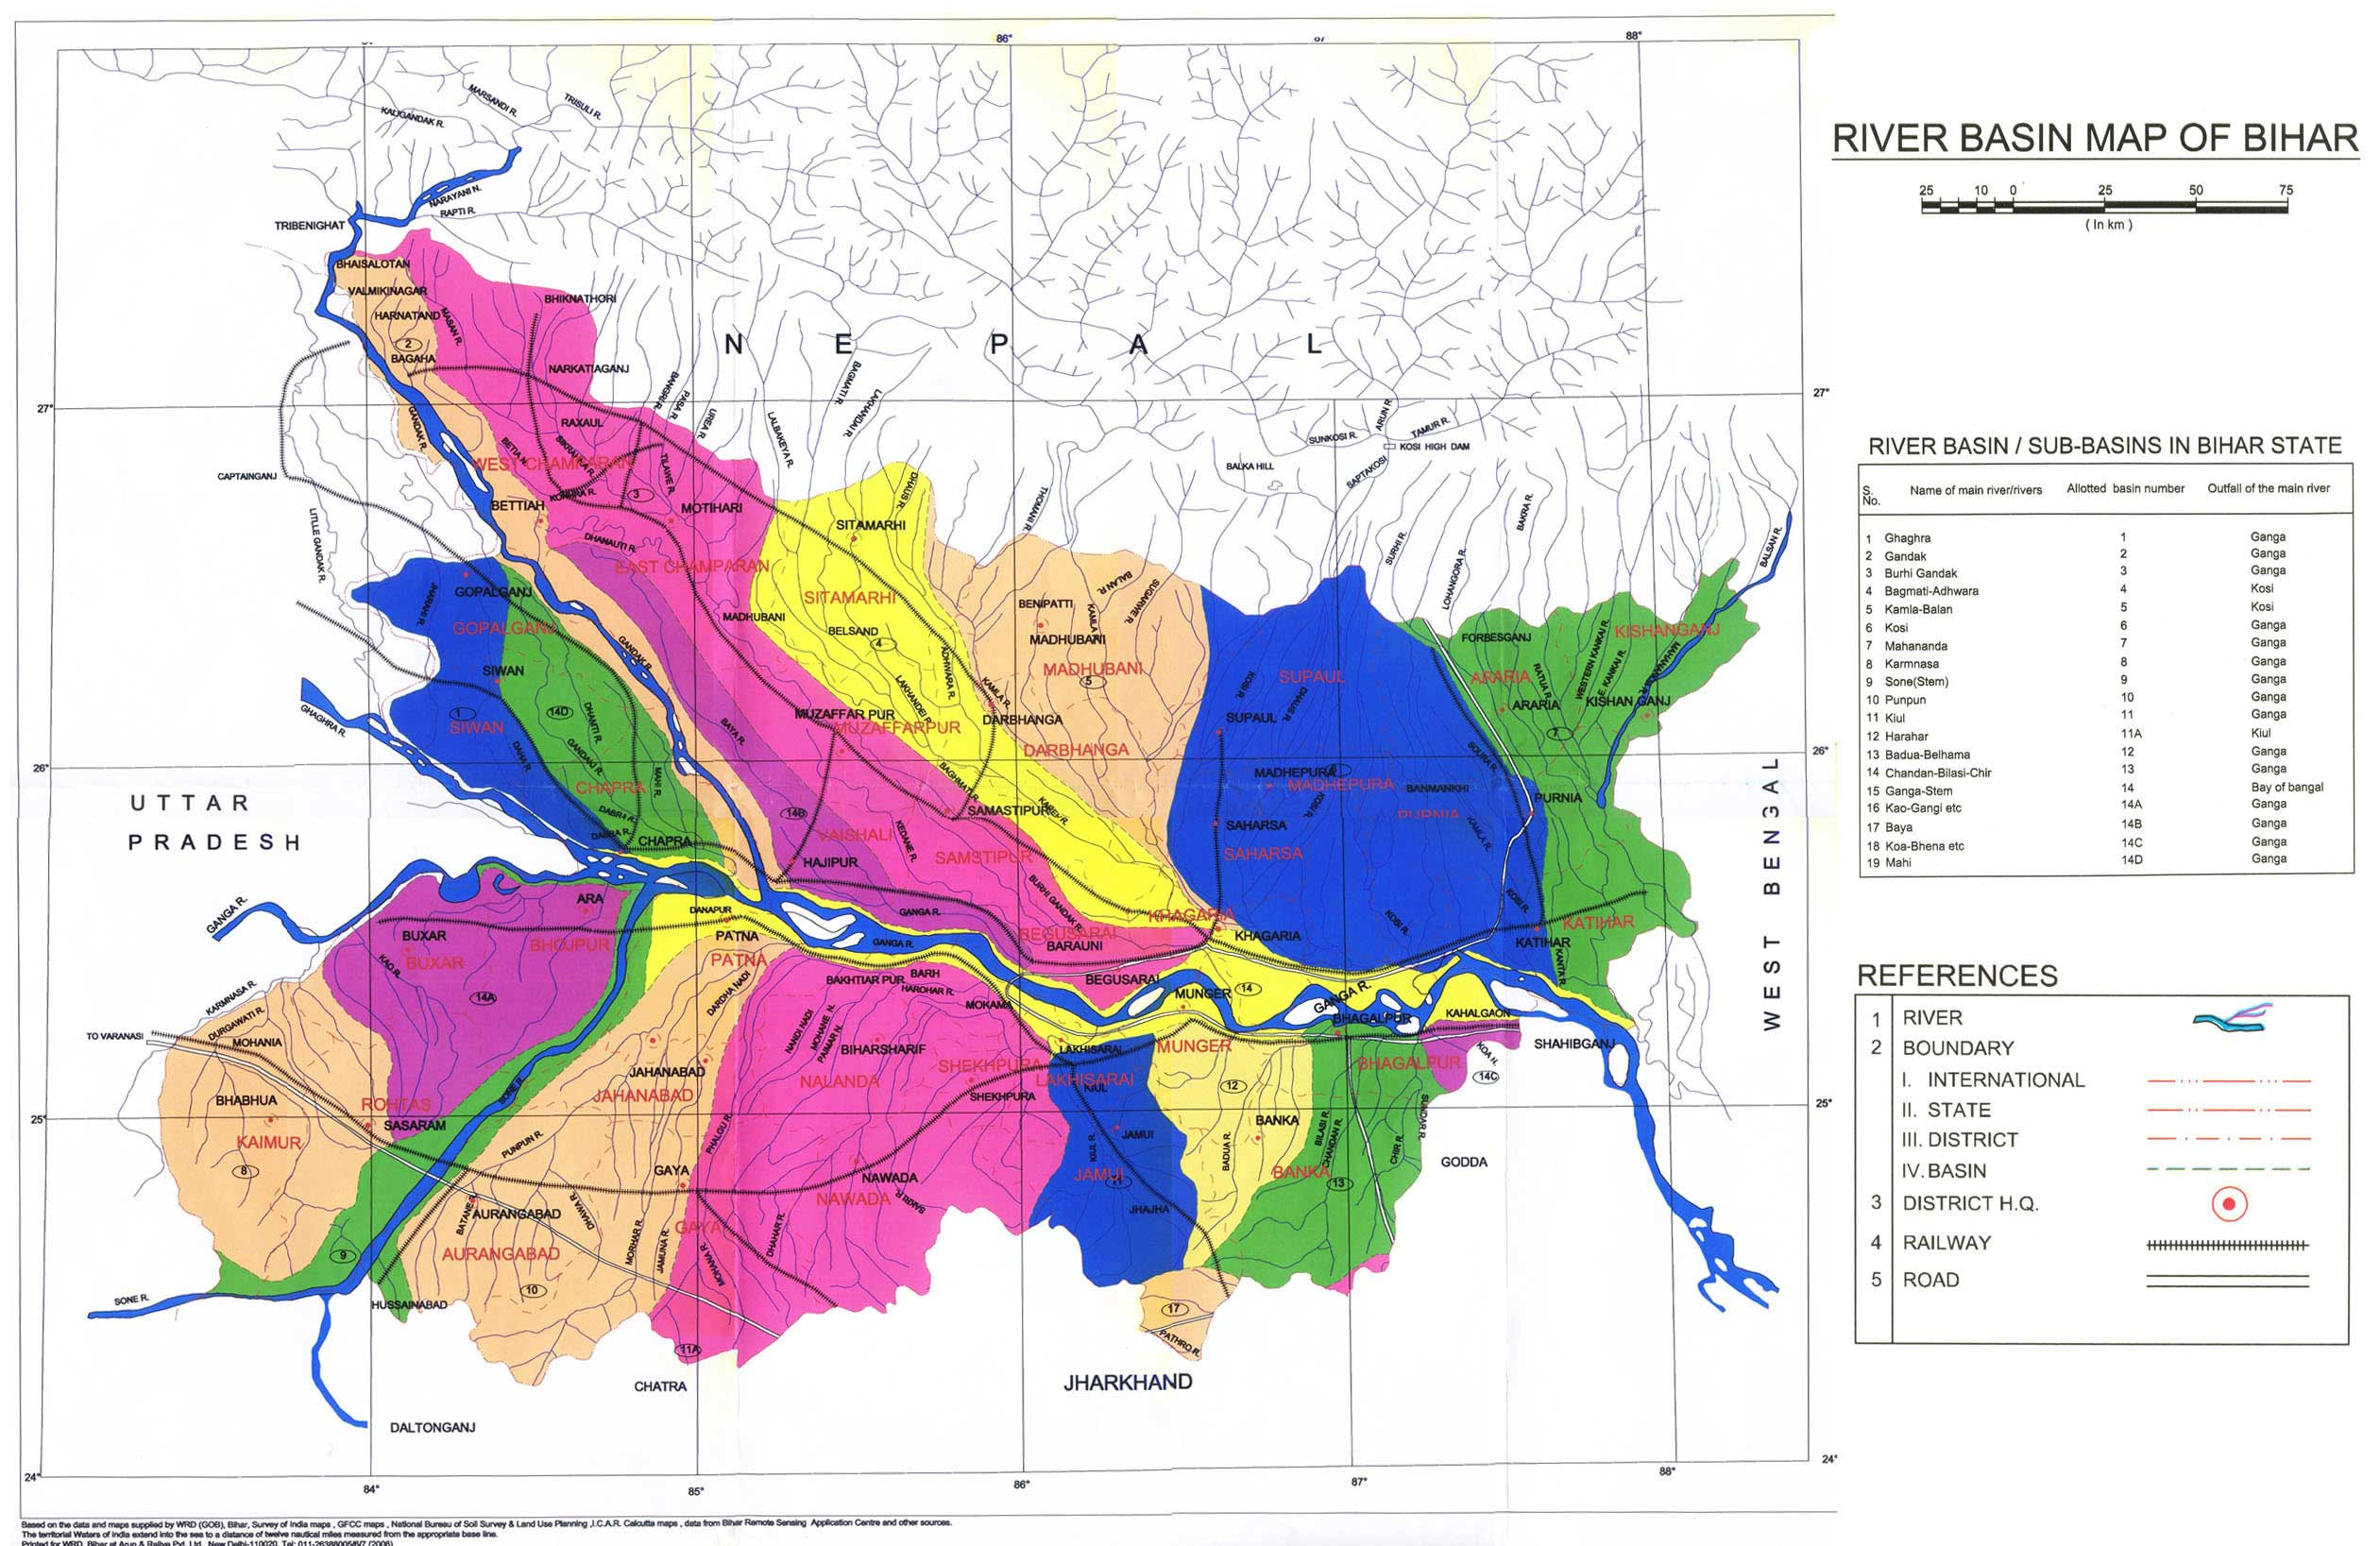 Worksheet. River Basin of Bihar Map  Bihar  mappery